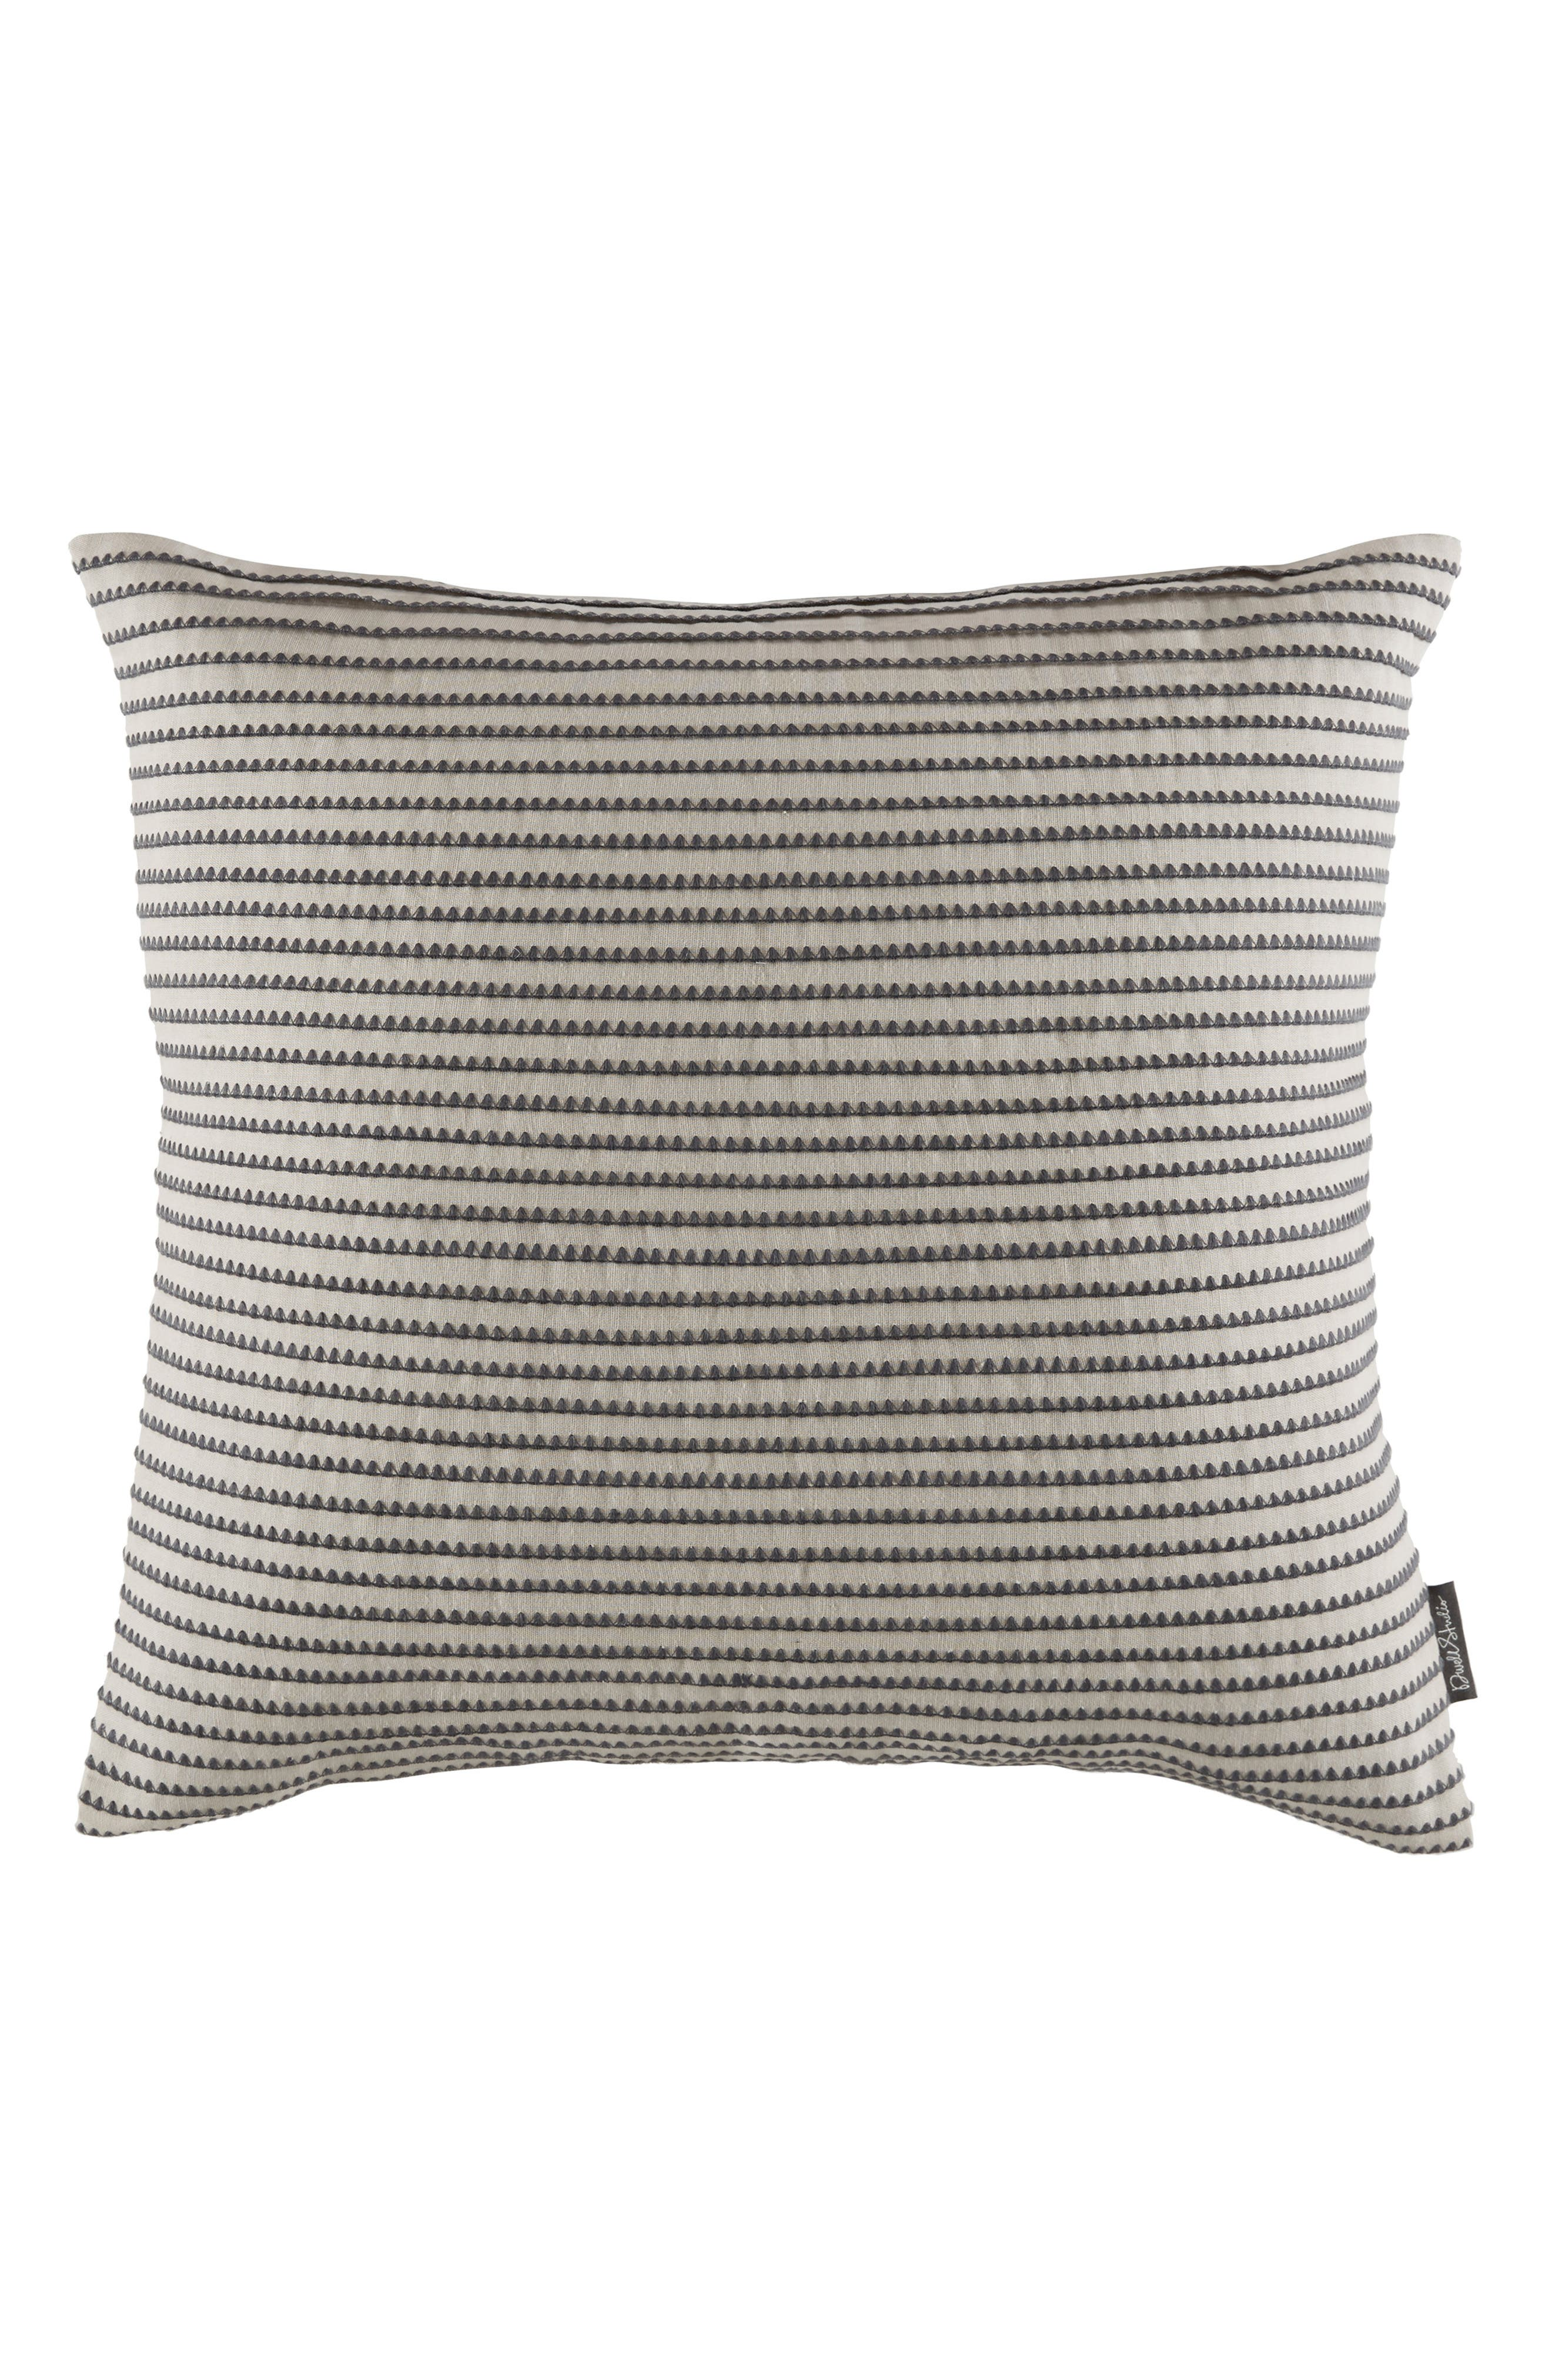 Alternate Image 1 Selected - DwellStudio Sloane Accent Pillow